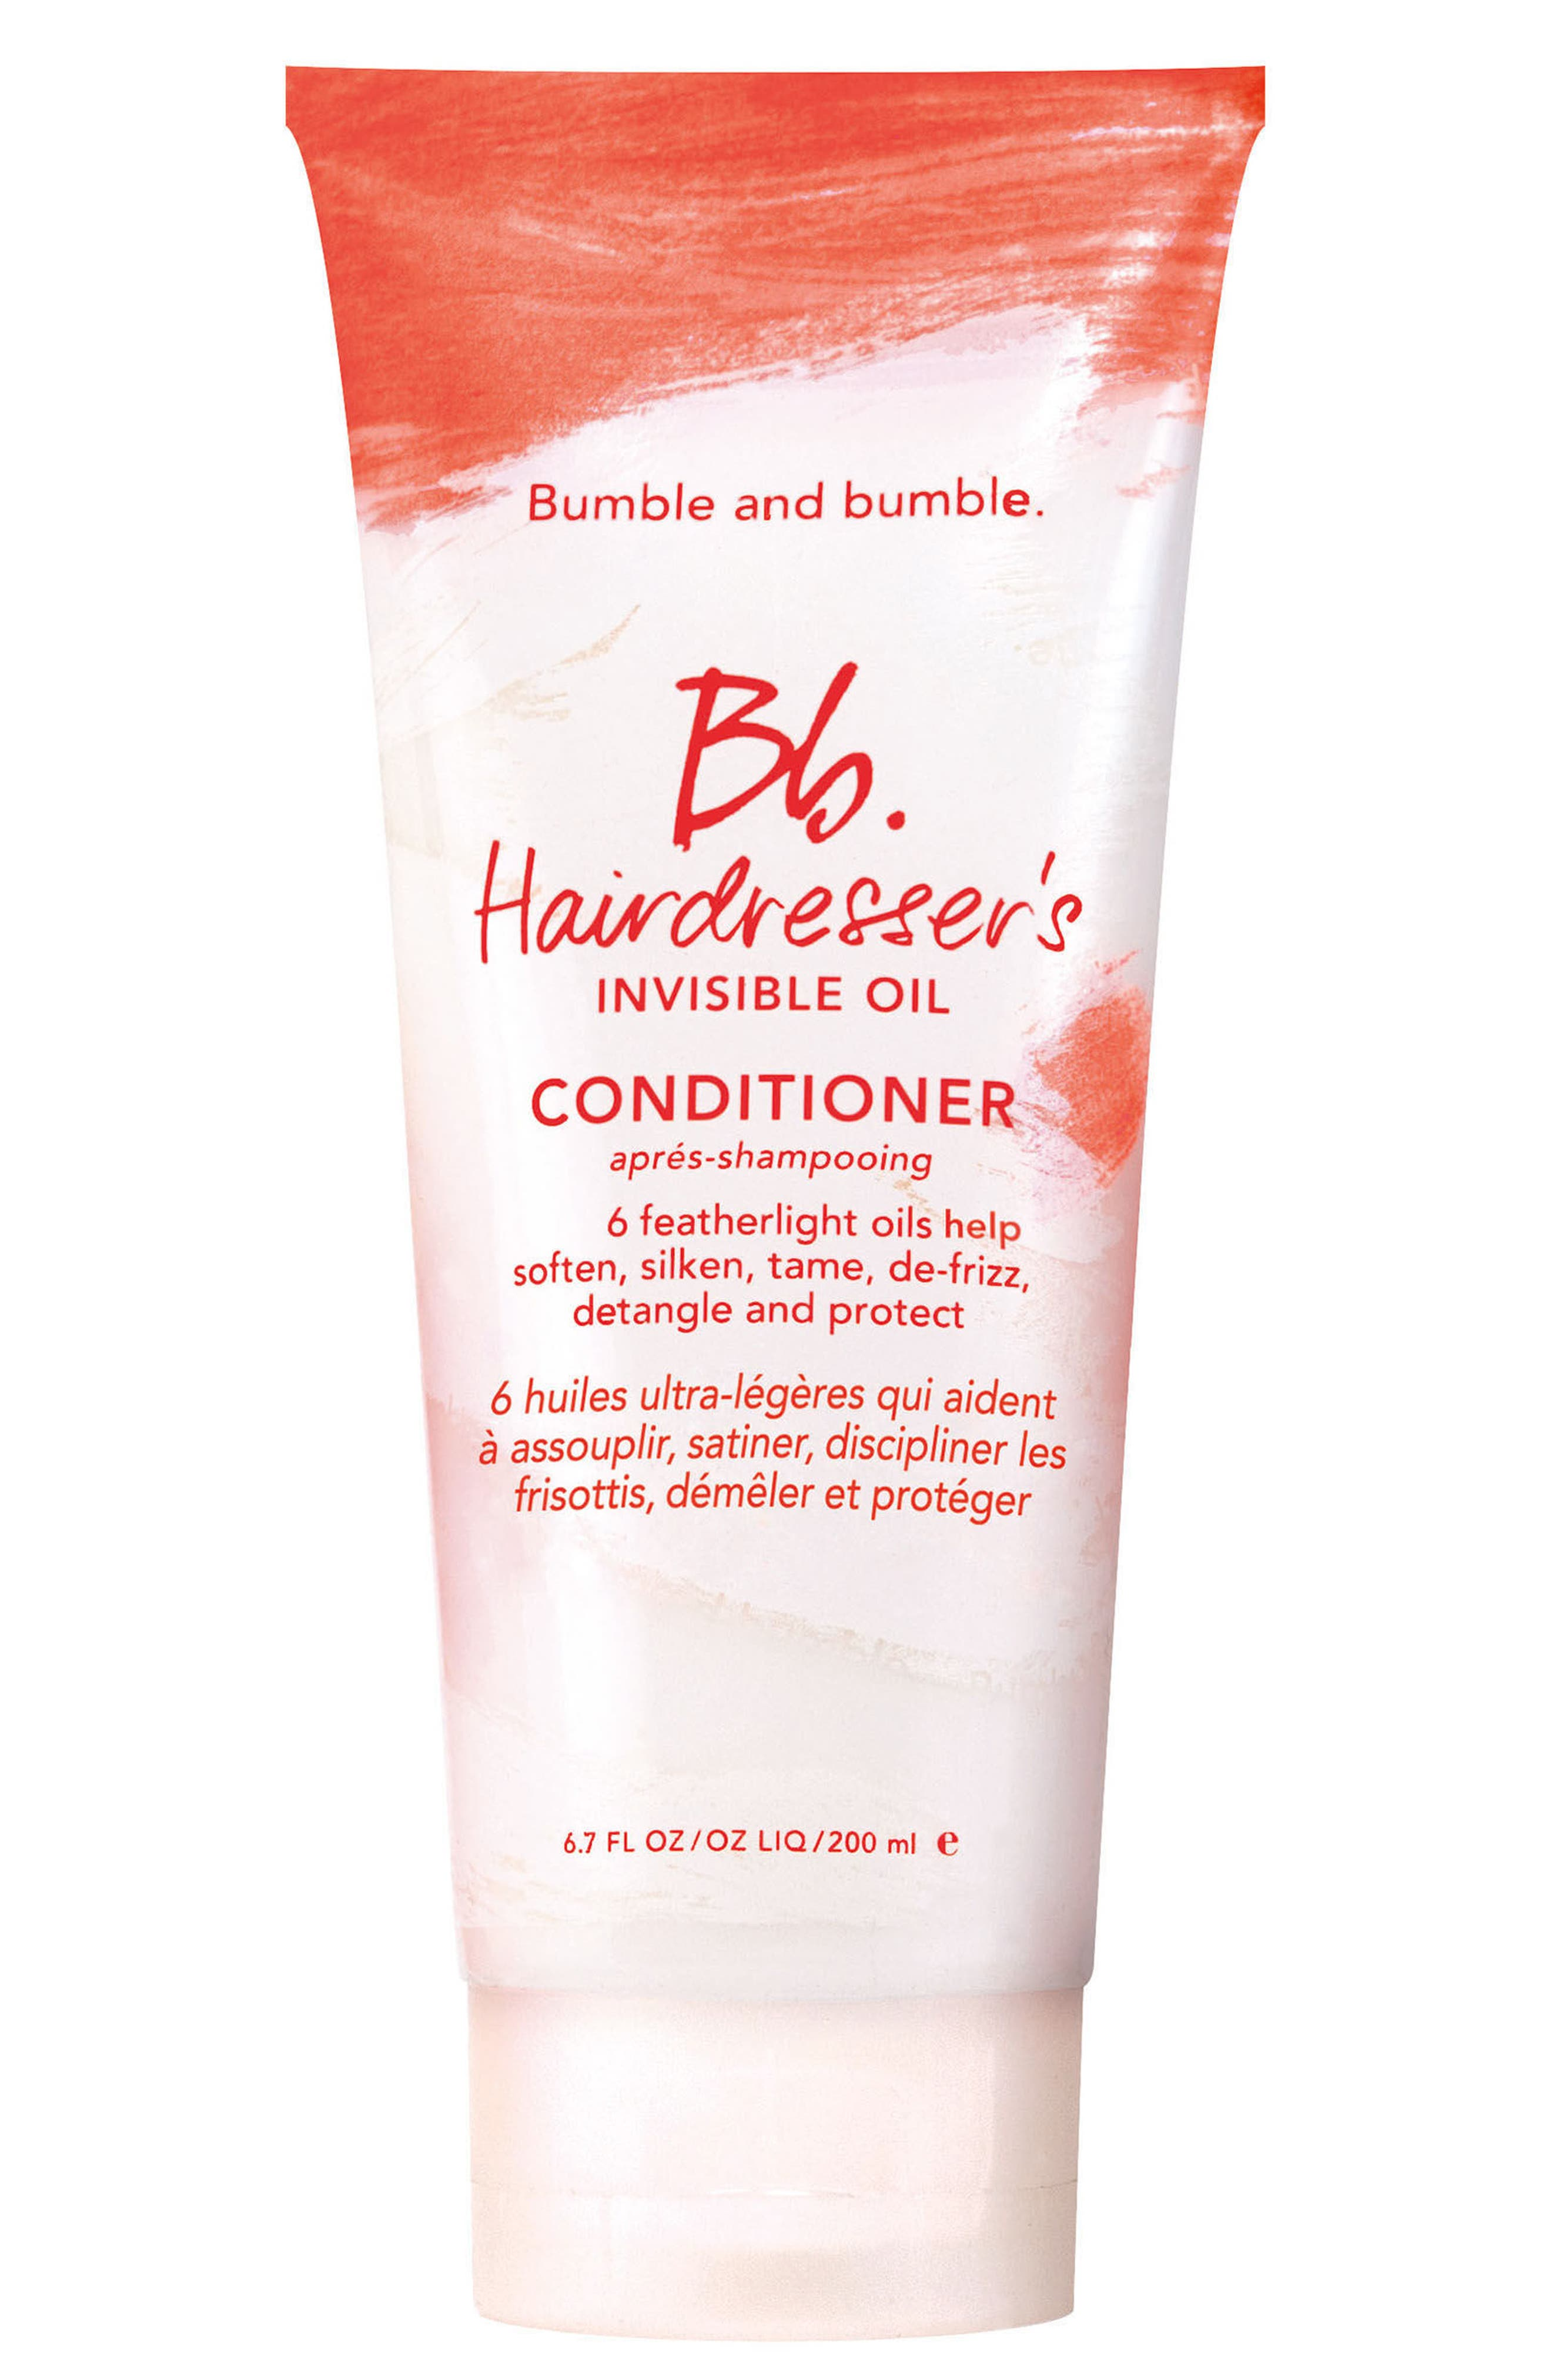 Main Image - Bumble and bumble Hairdresser's Invisible Oil Conditioner